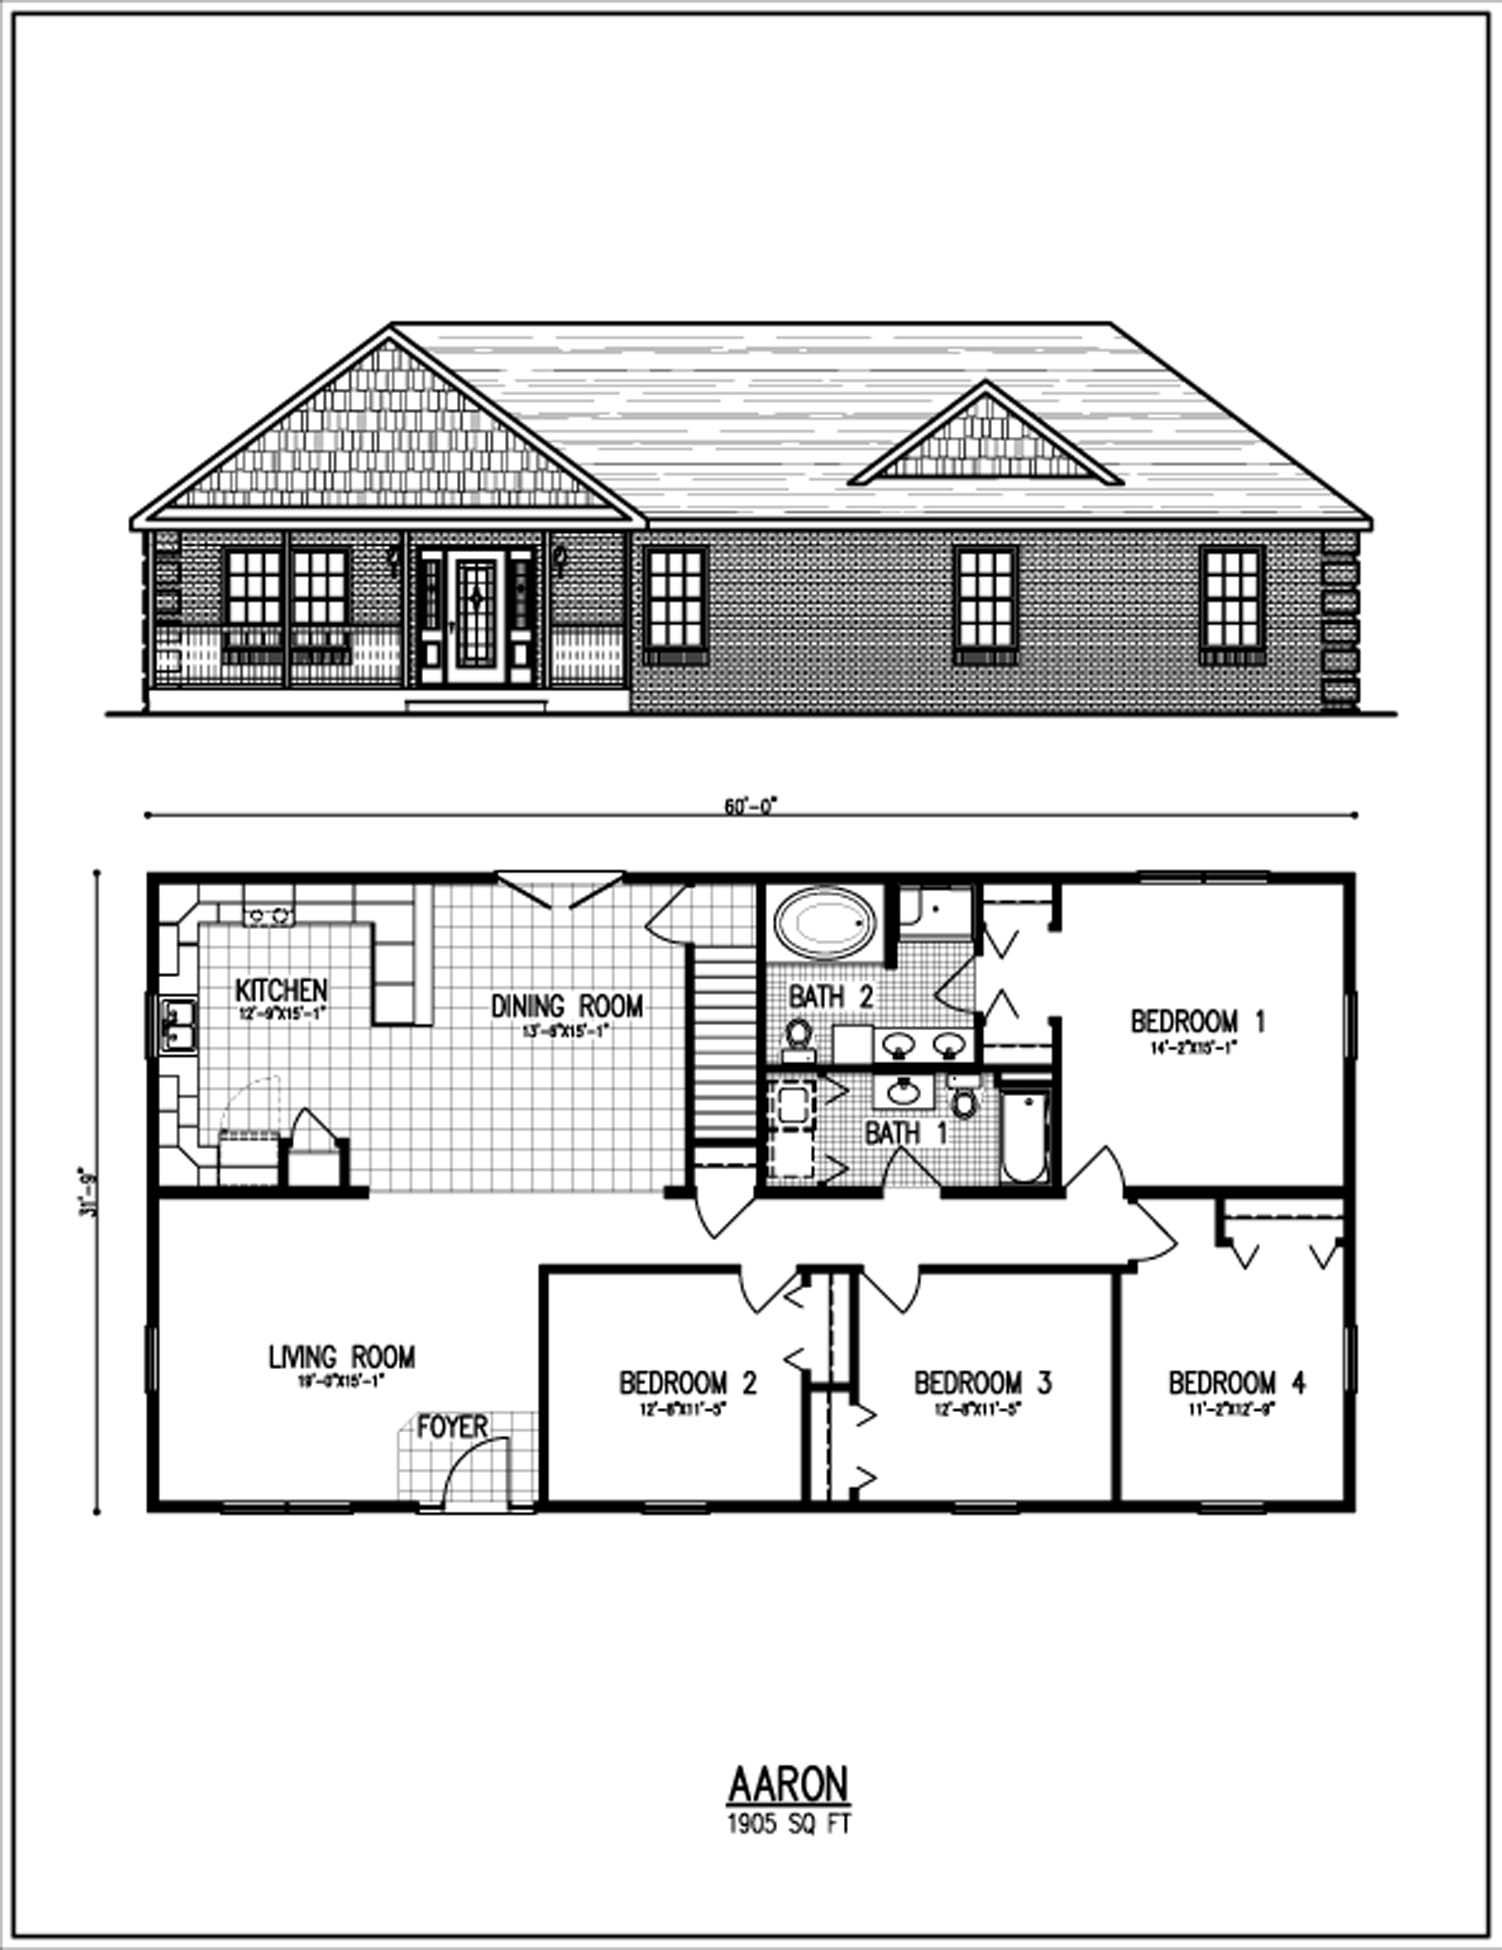 All american homes floorplan center staffordcape for American home designs plans